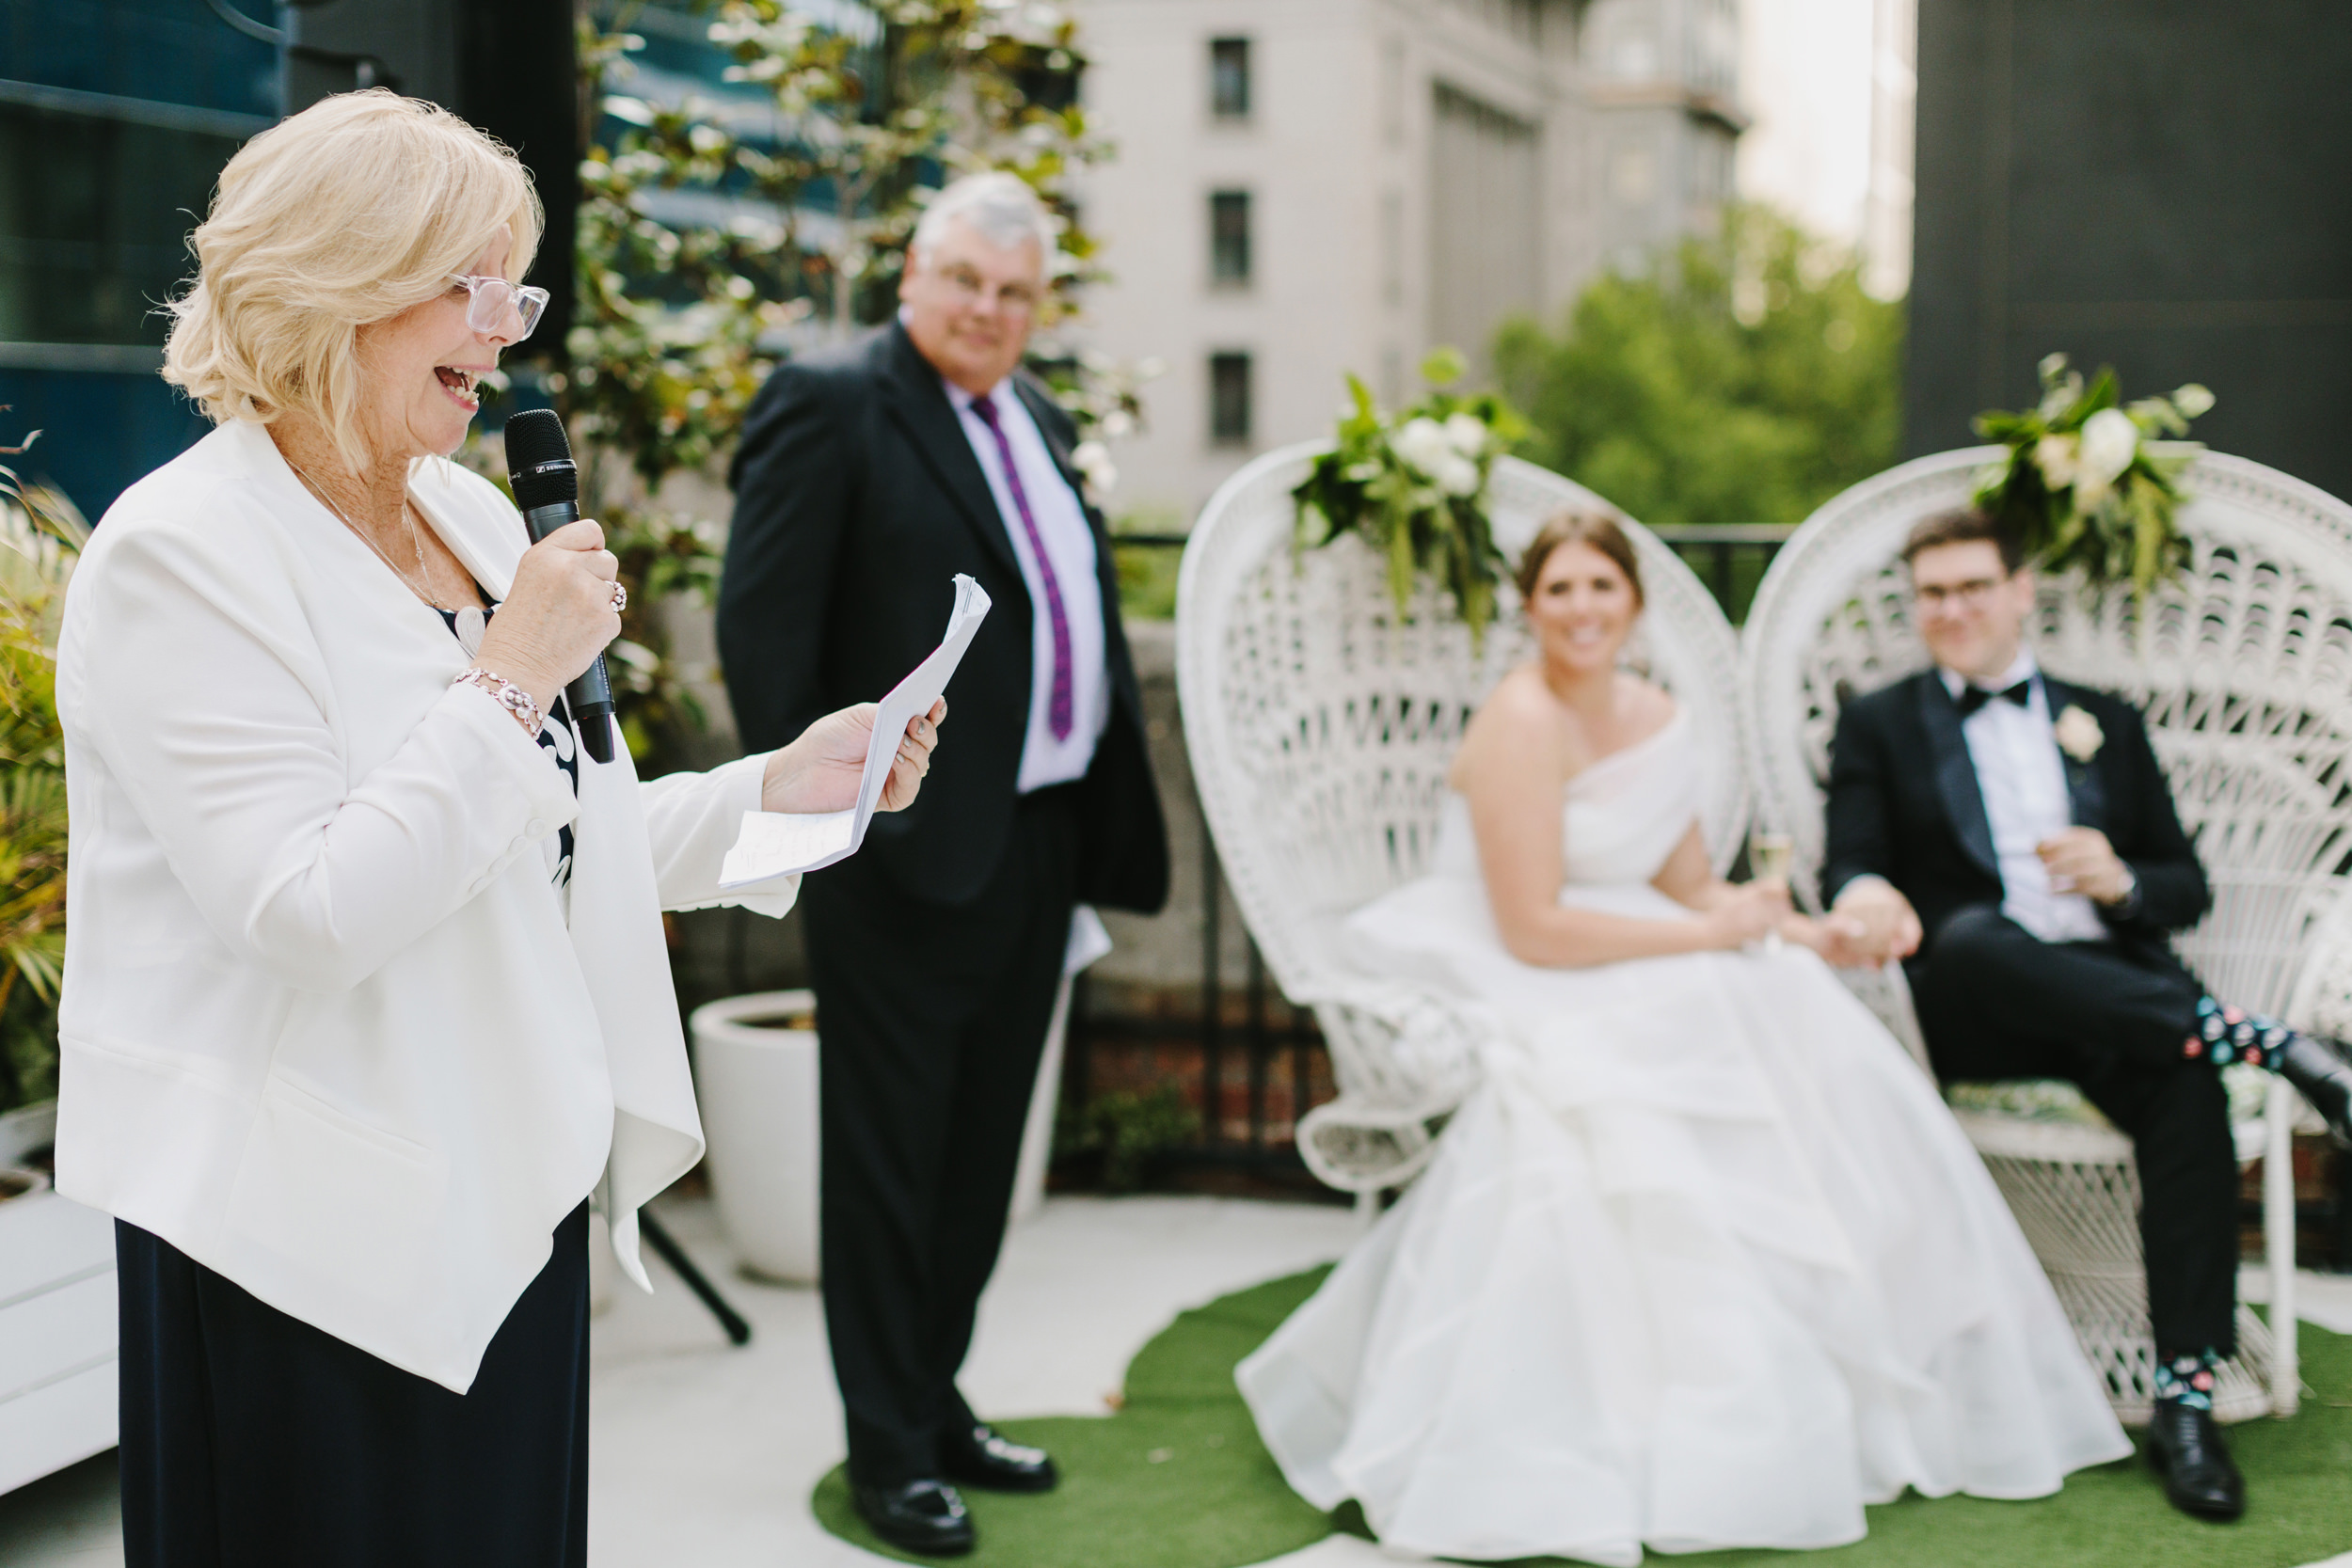 Melbourne_City_Rooftop_Wedding_Tyson_Brigette096.JPG